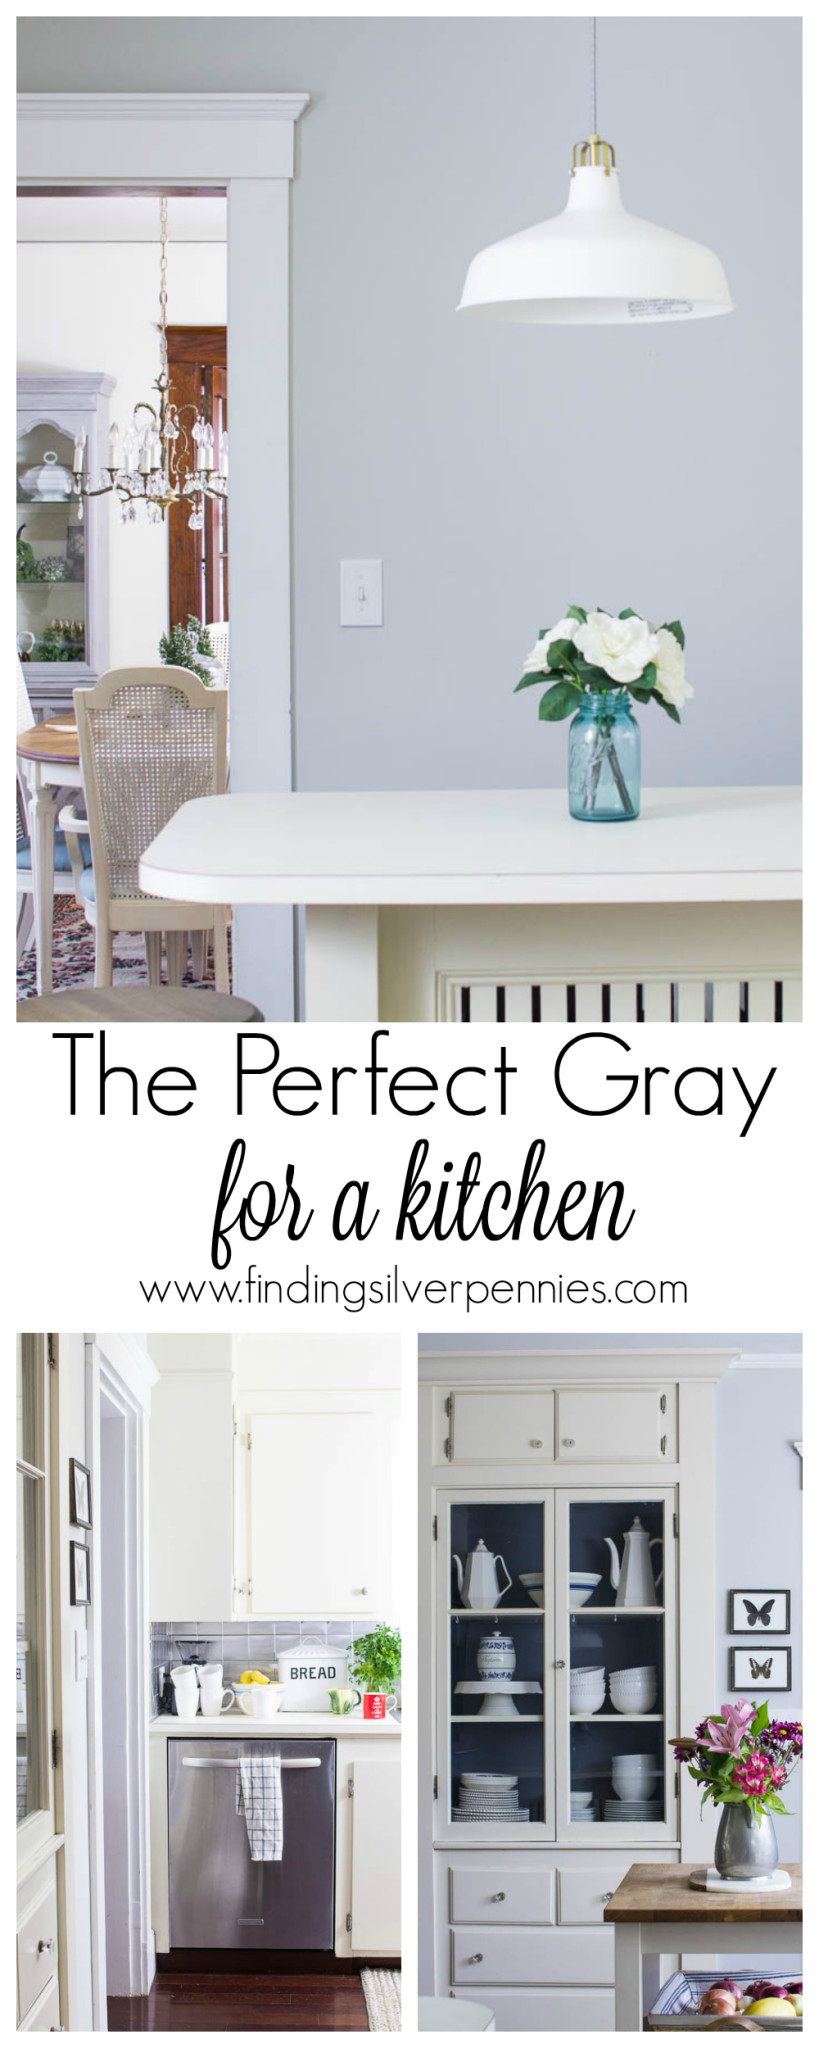 The perfect gray for a kitchen